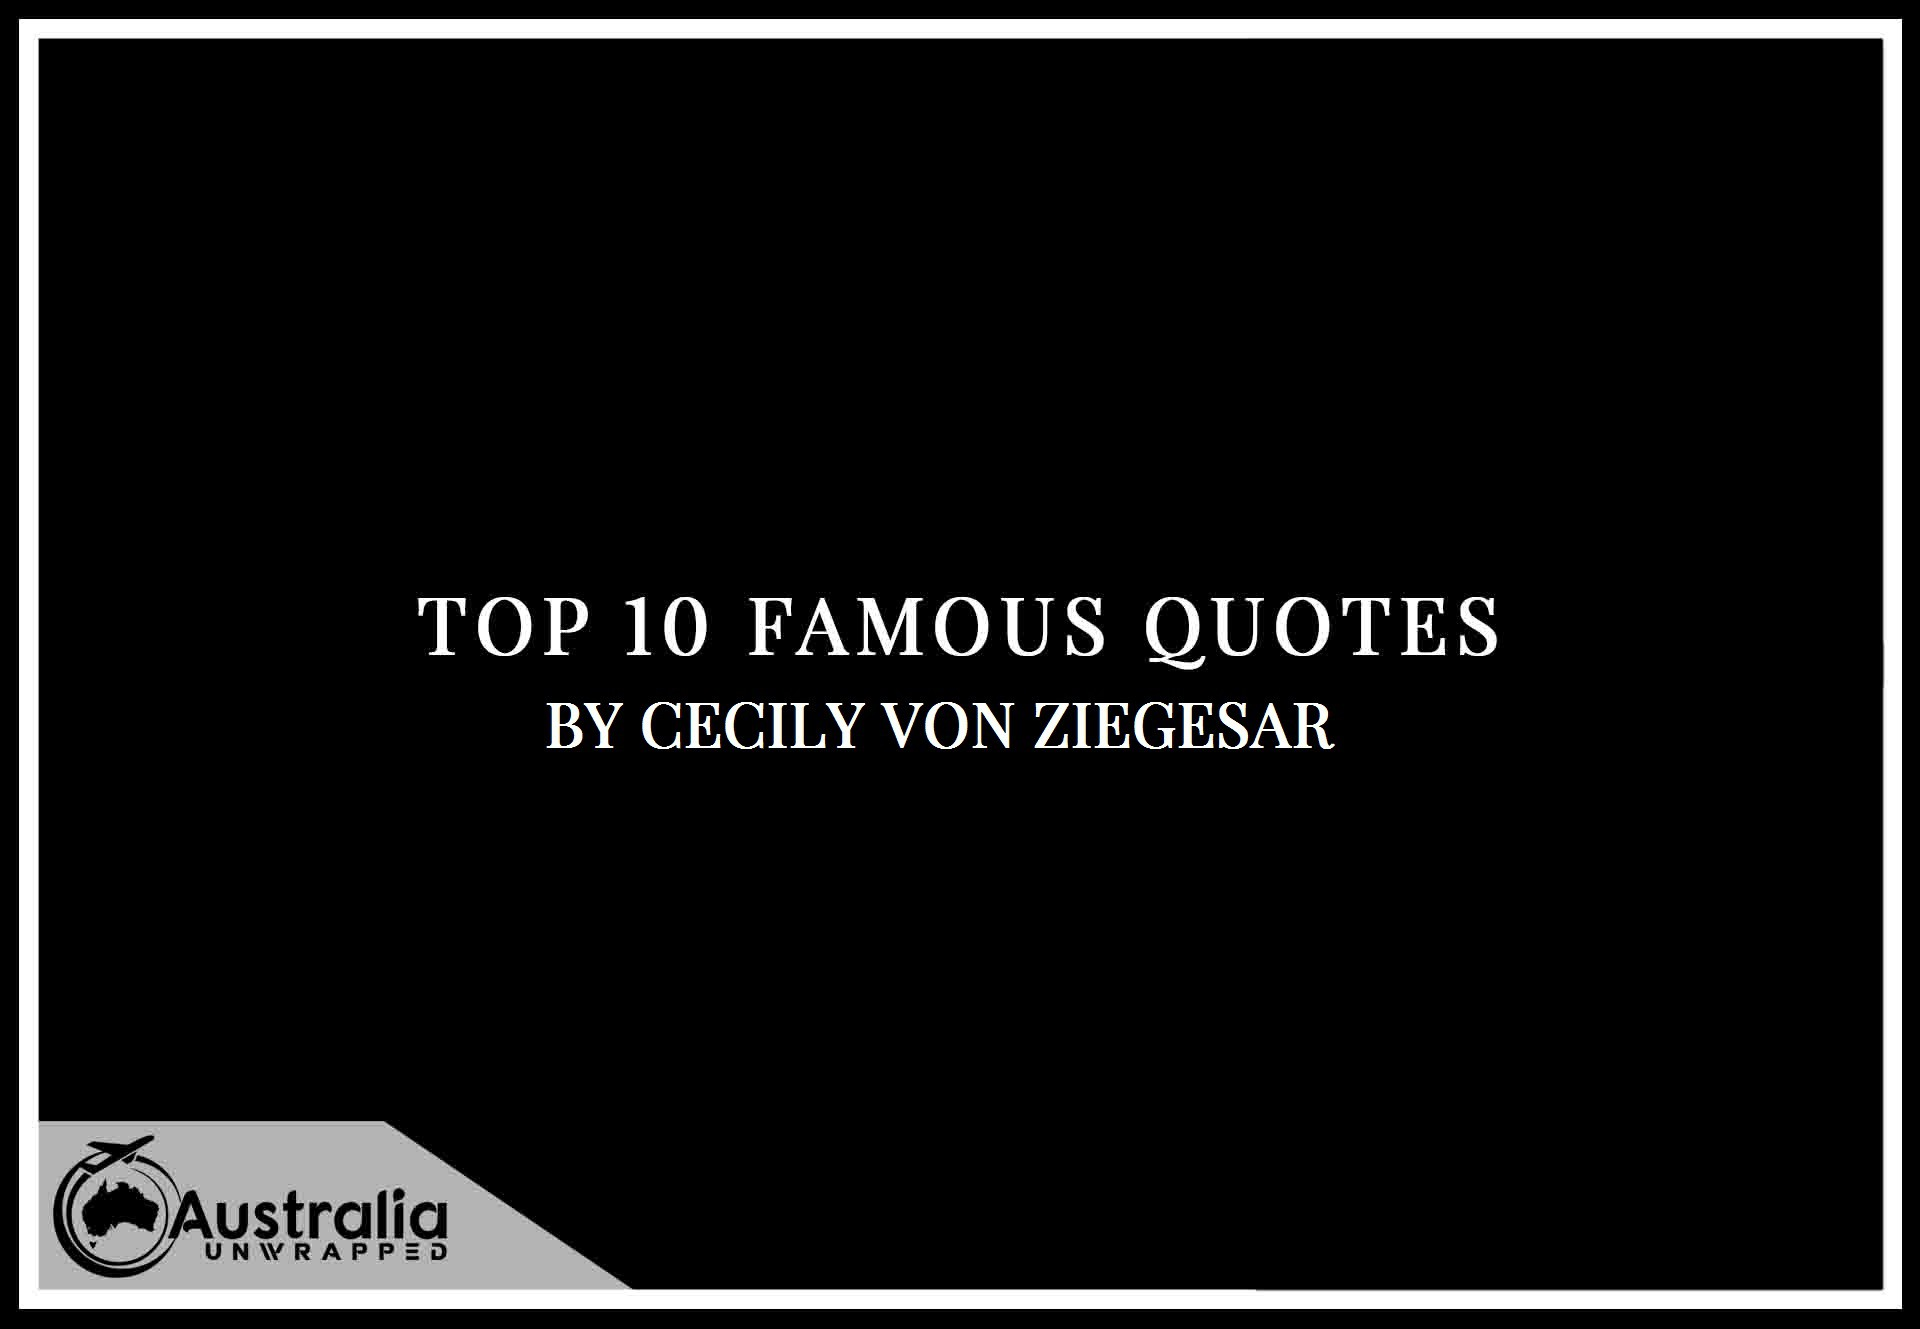 Cecily von Ziegesar's Top 10 Popular and Famous Quotes